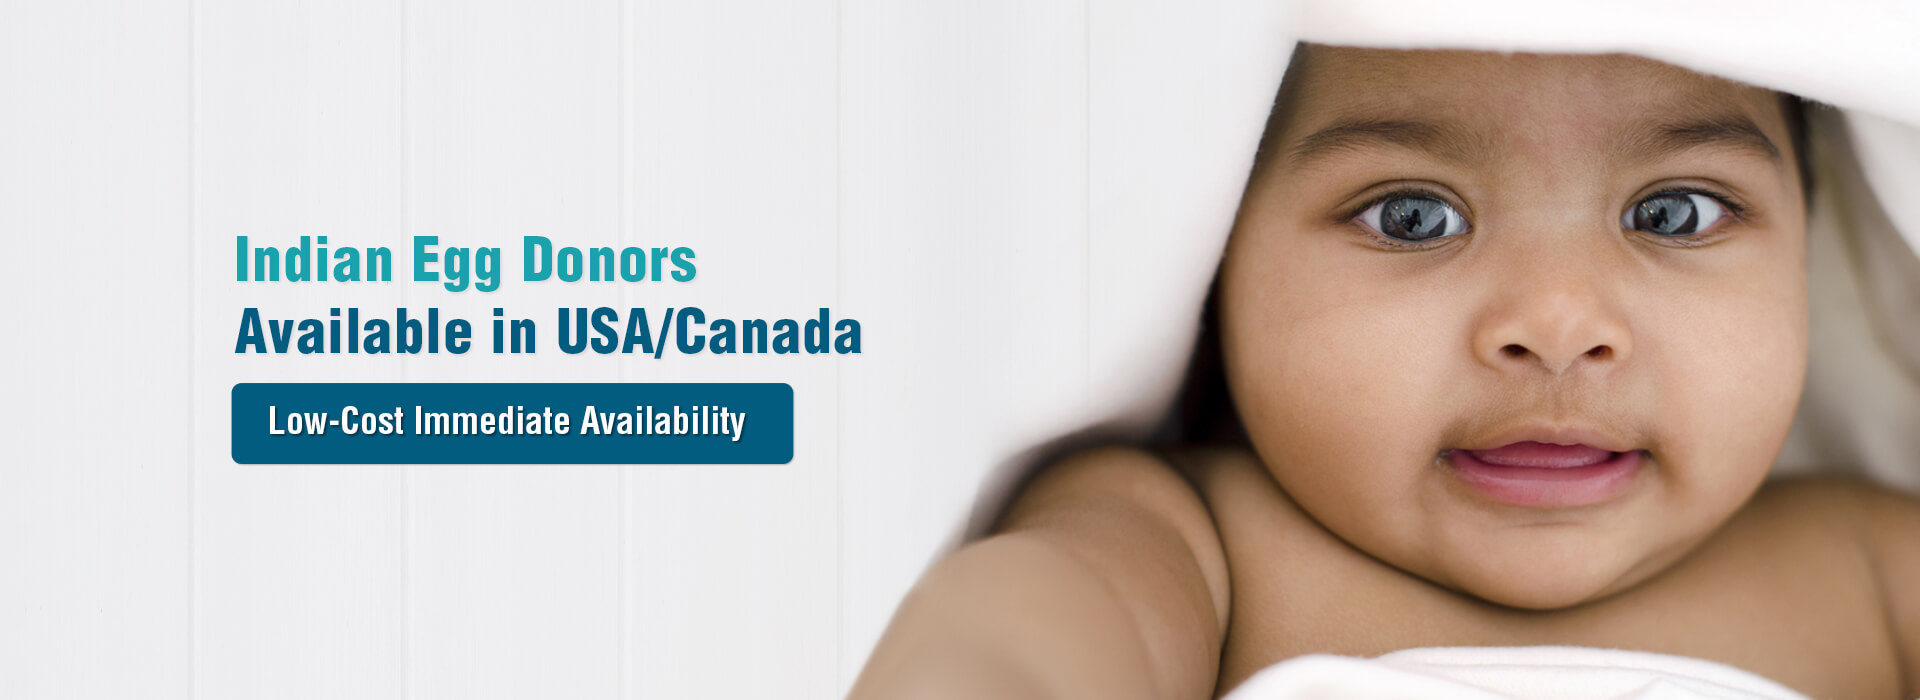 Indian Egg Donors Available in USA /Canada